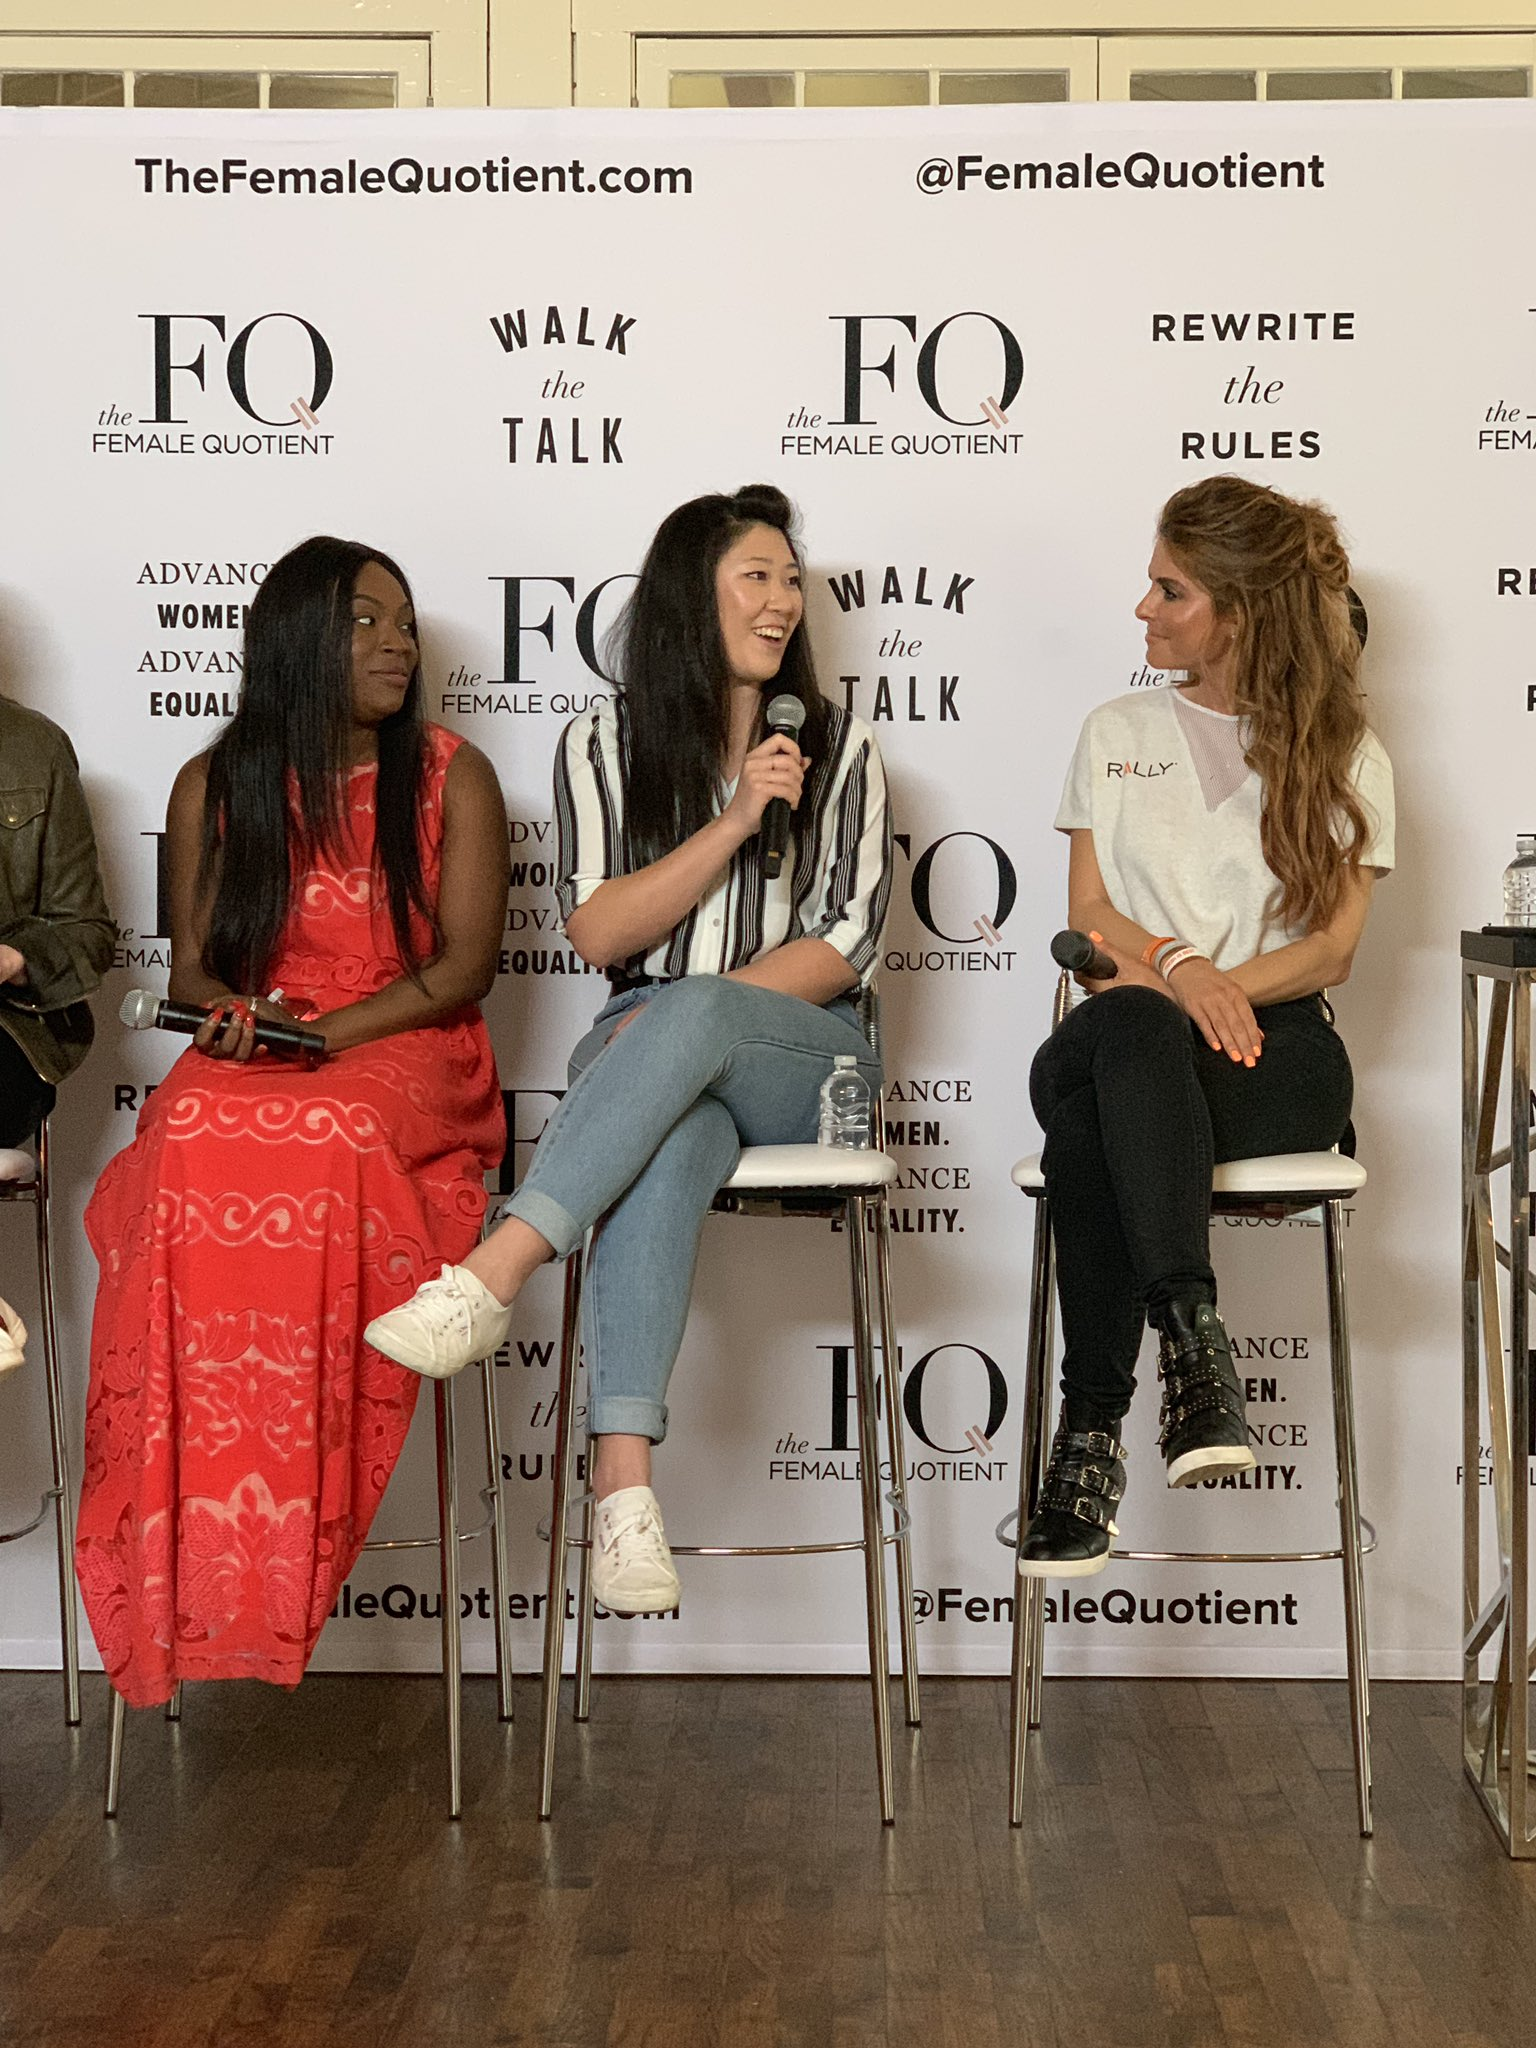 RT @femalequotient: I'm really passionate about elevating people. Whether it's people in my life, like family or friends, or the brands we work with. Diana Kim, @Braze #sxsw https://t.co/eyiFoX0Y8Y